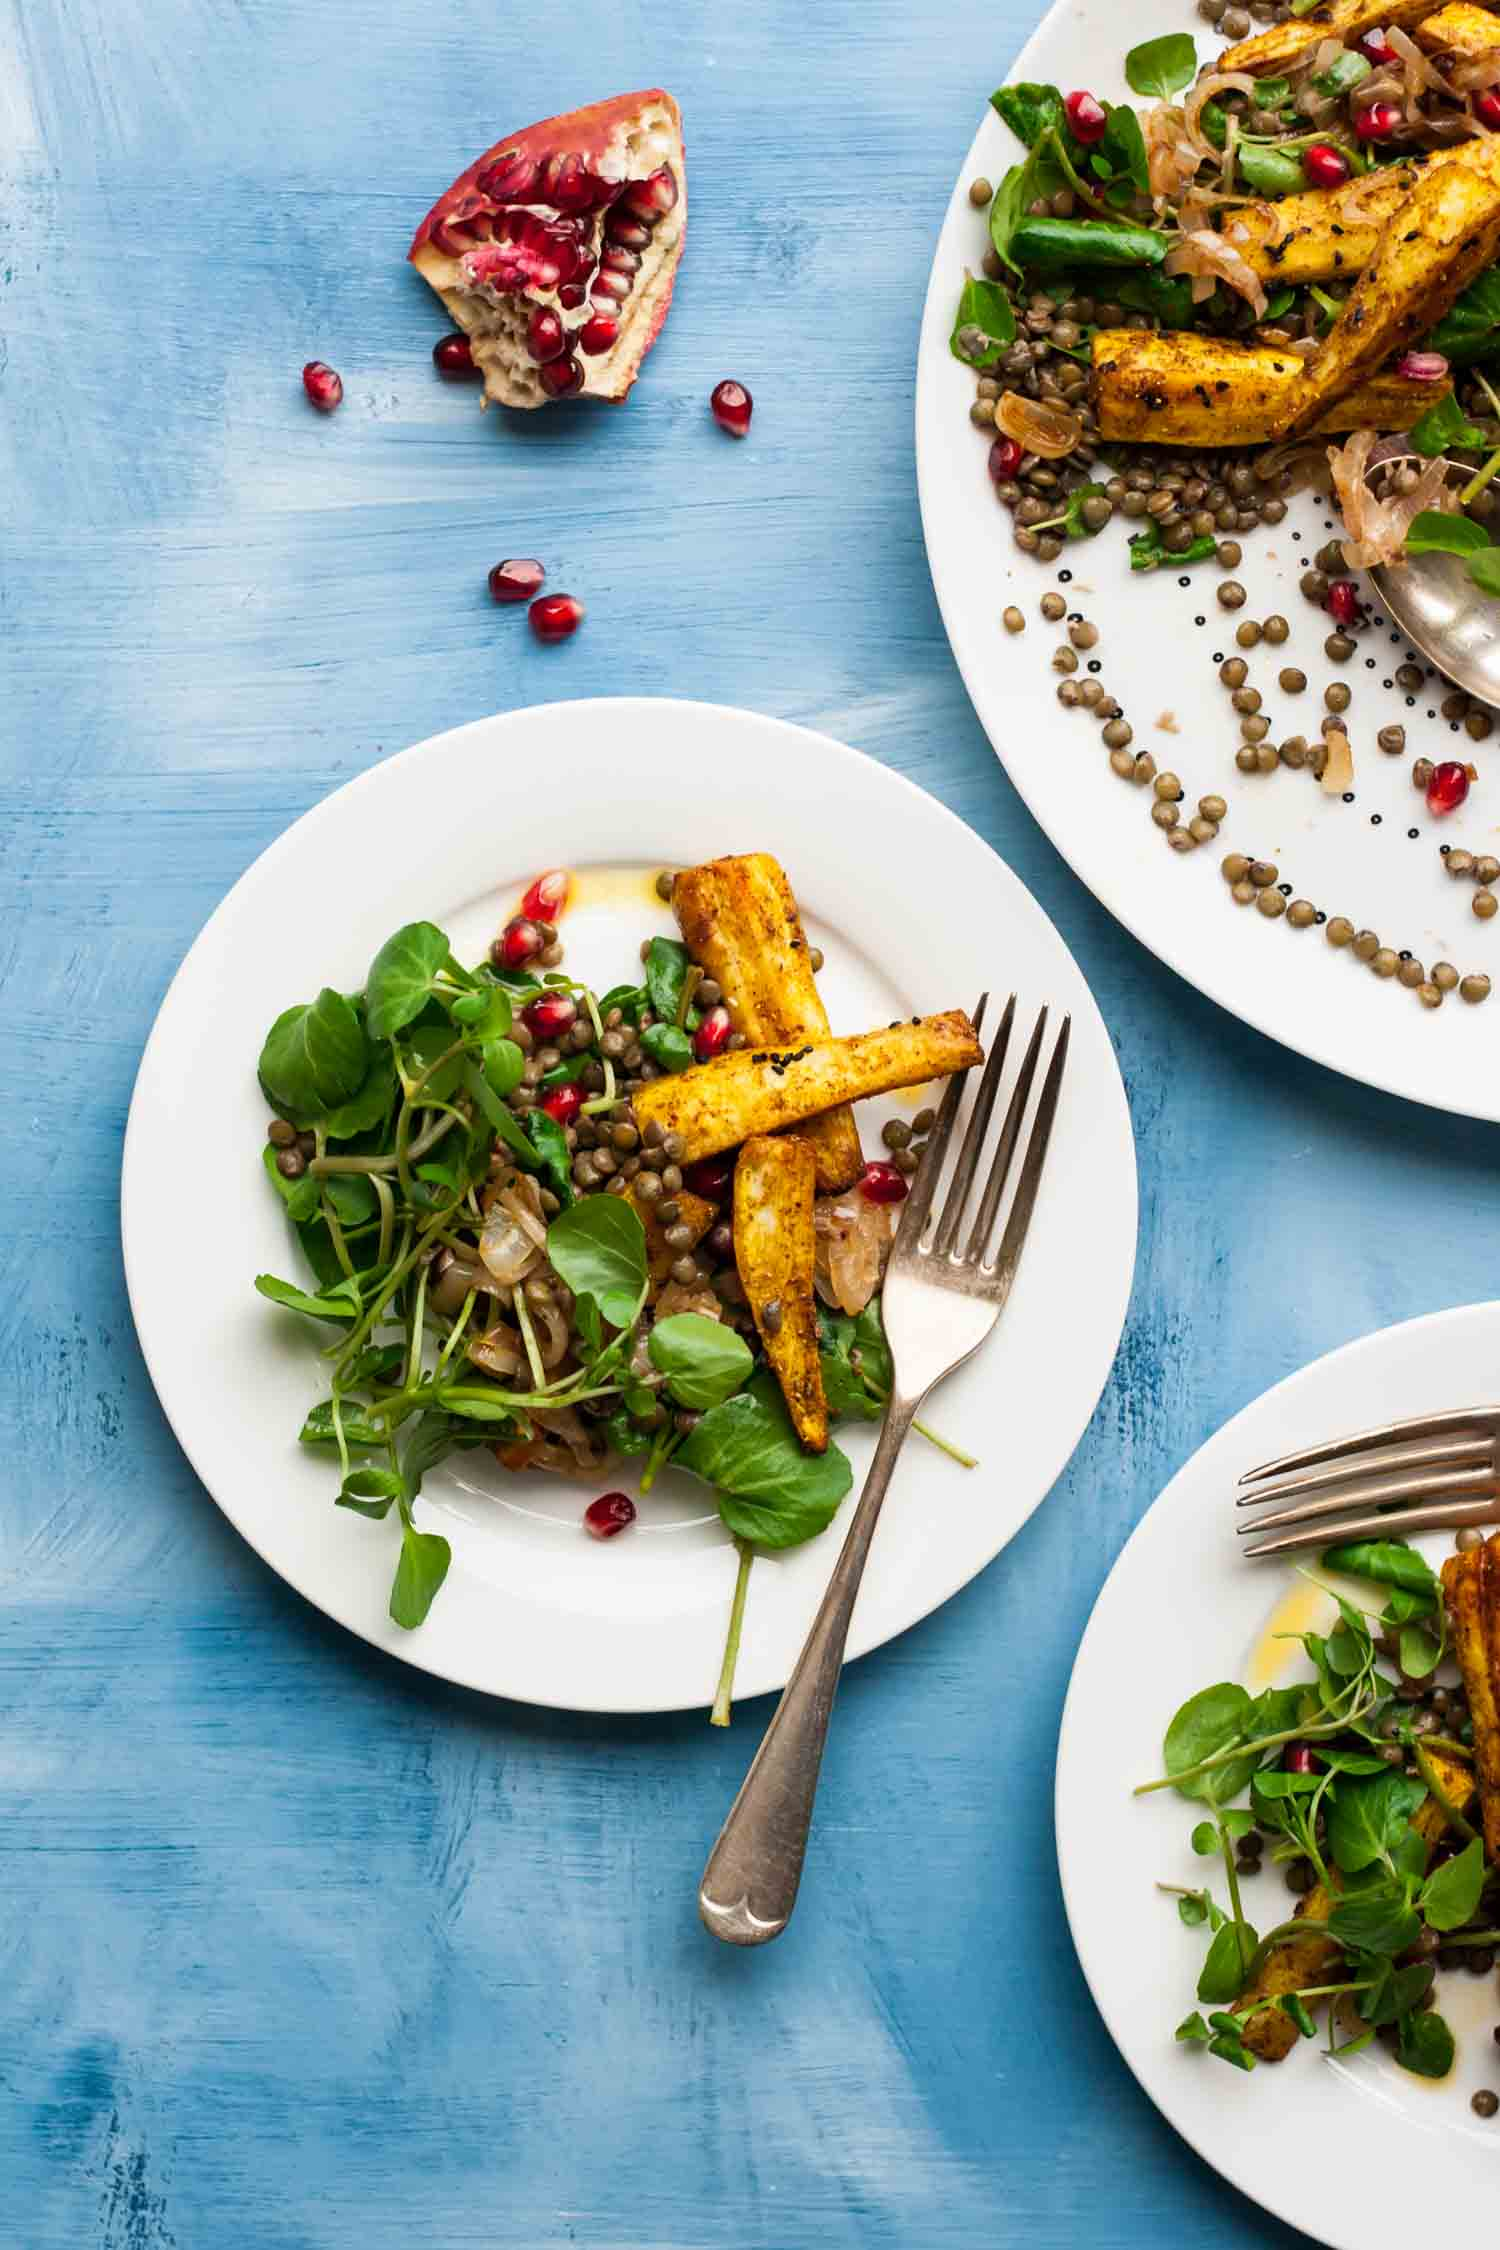 Indian-Spiced Parsnip & Lentil Salad - a warmly spiced and nourishing salad, perfect for chilly days when you're craving something lighter yet still satisfying   eatloveeats.com